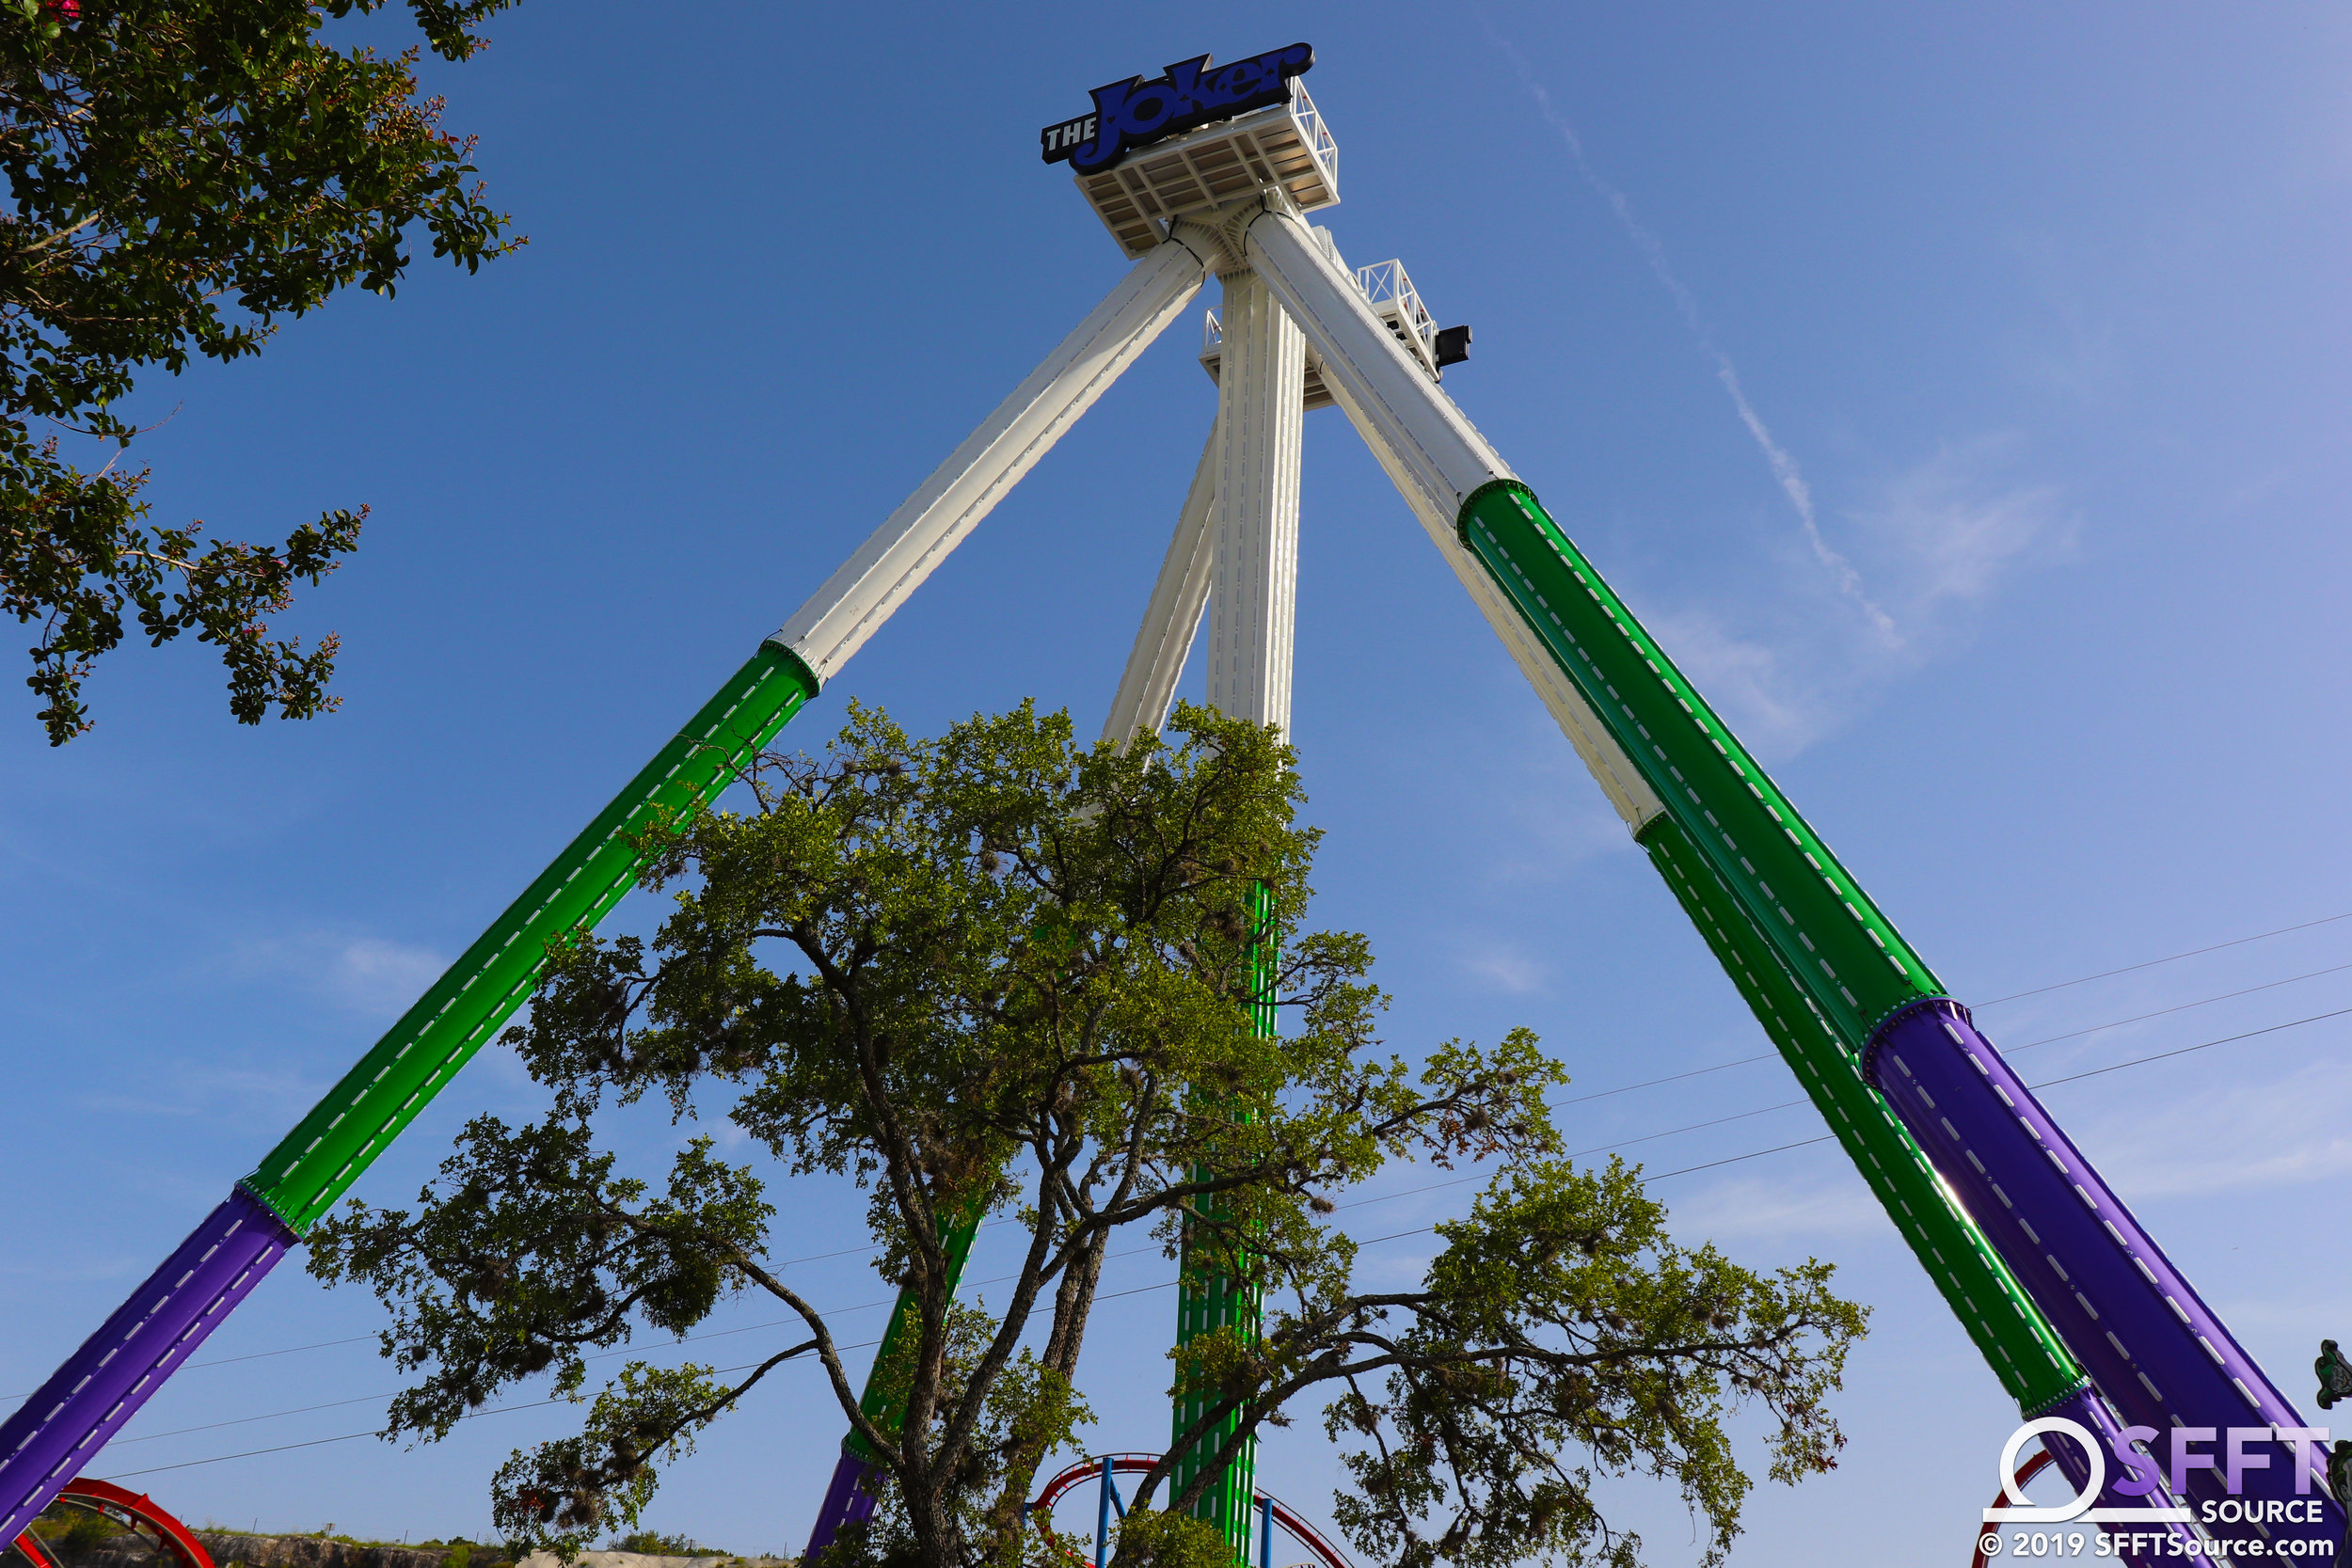 The Joker Carnival of Chaos is a record-breaking attraction.